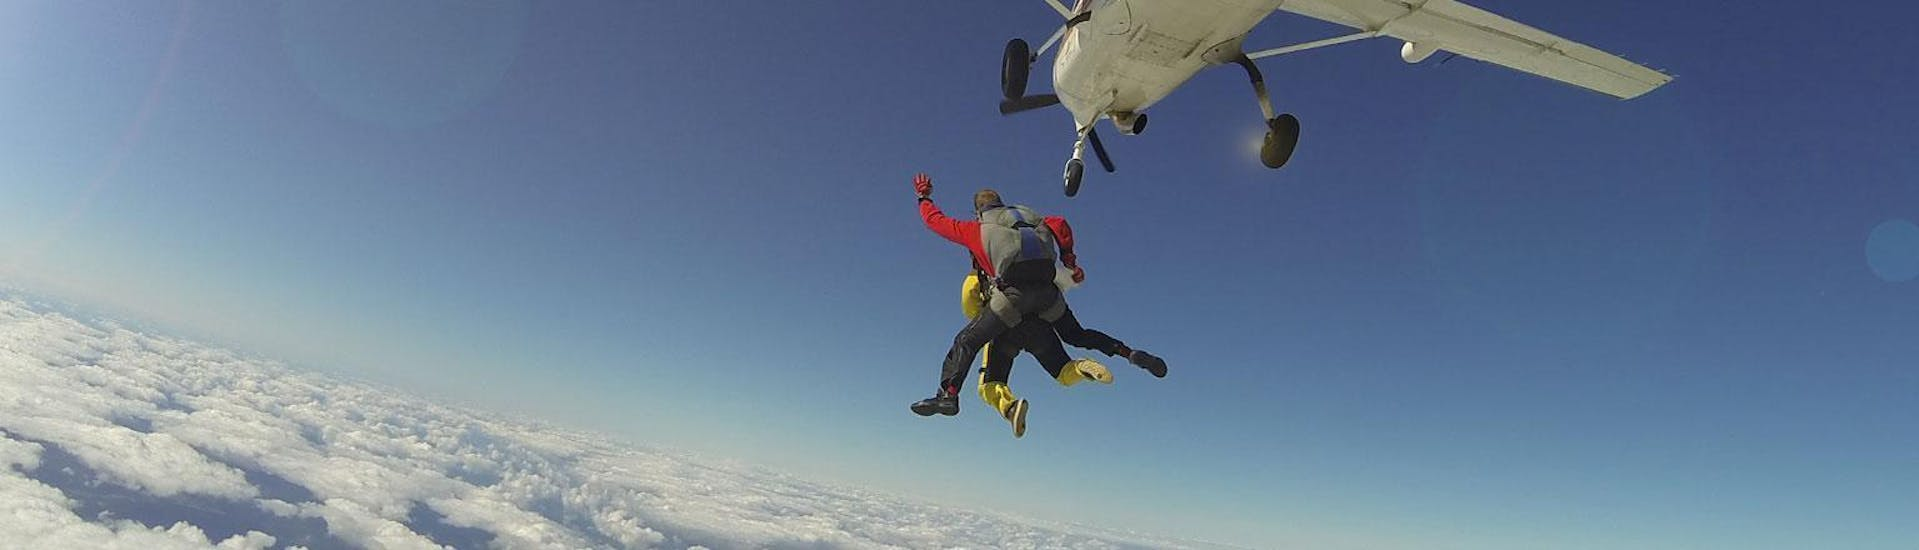 A certified tandem master from Skydive Spa & Cerfontaine has jumped off a plane with a passenger during a tandem skydive from 4000m above Cerfontaine.